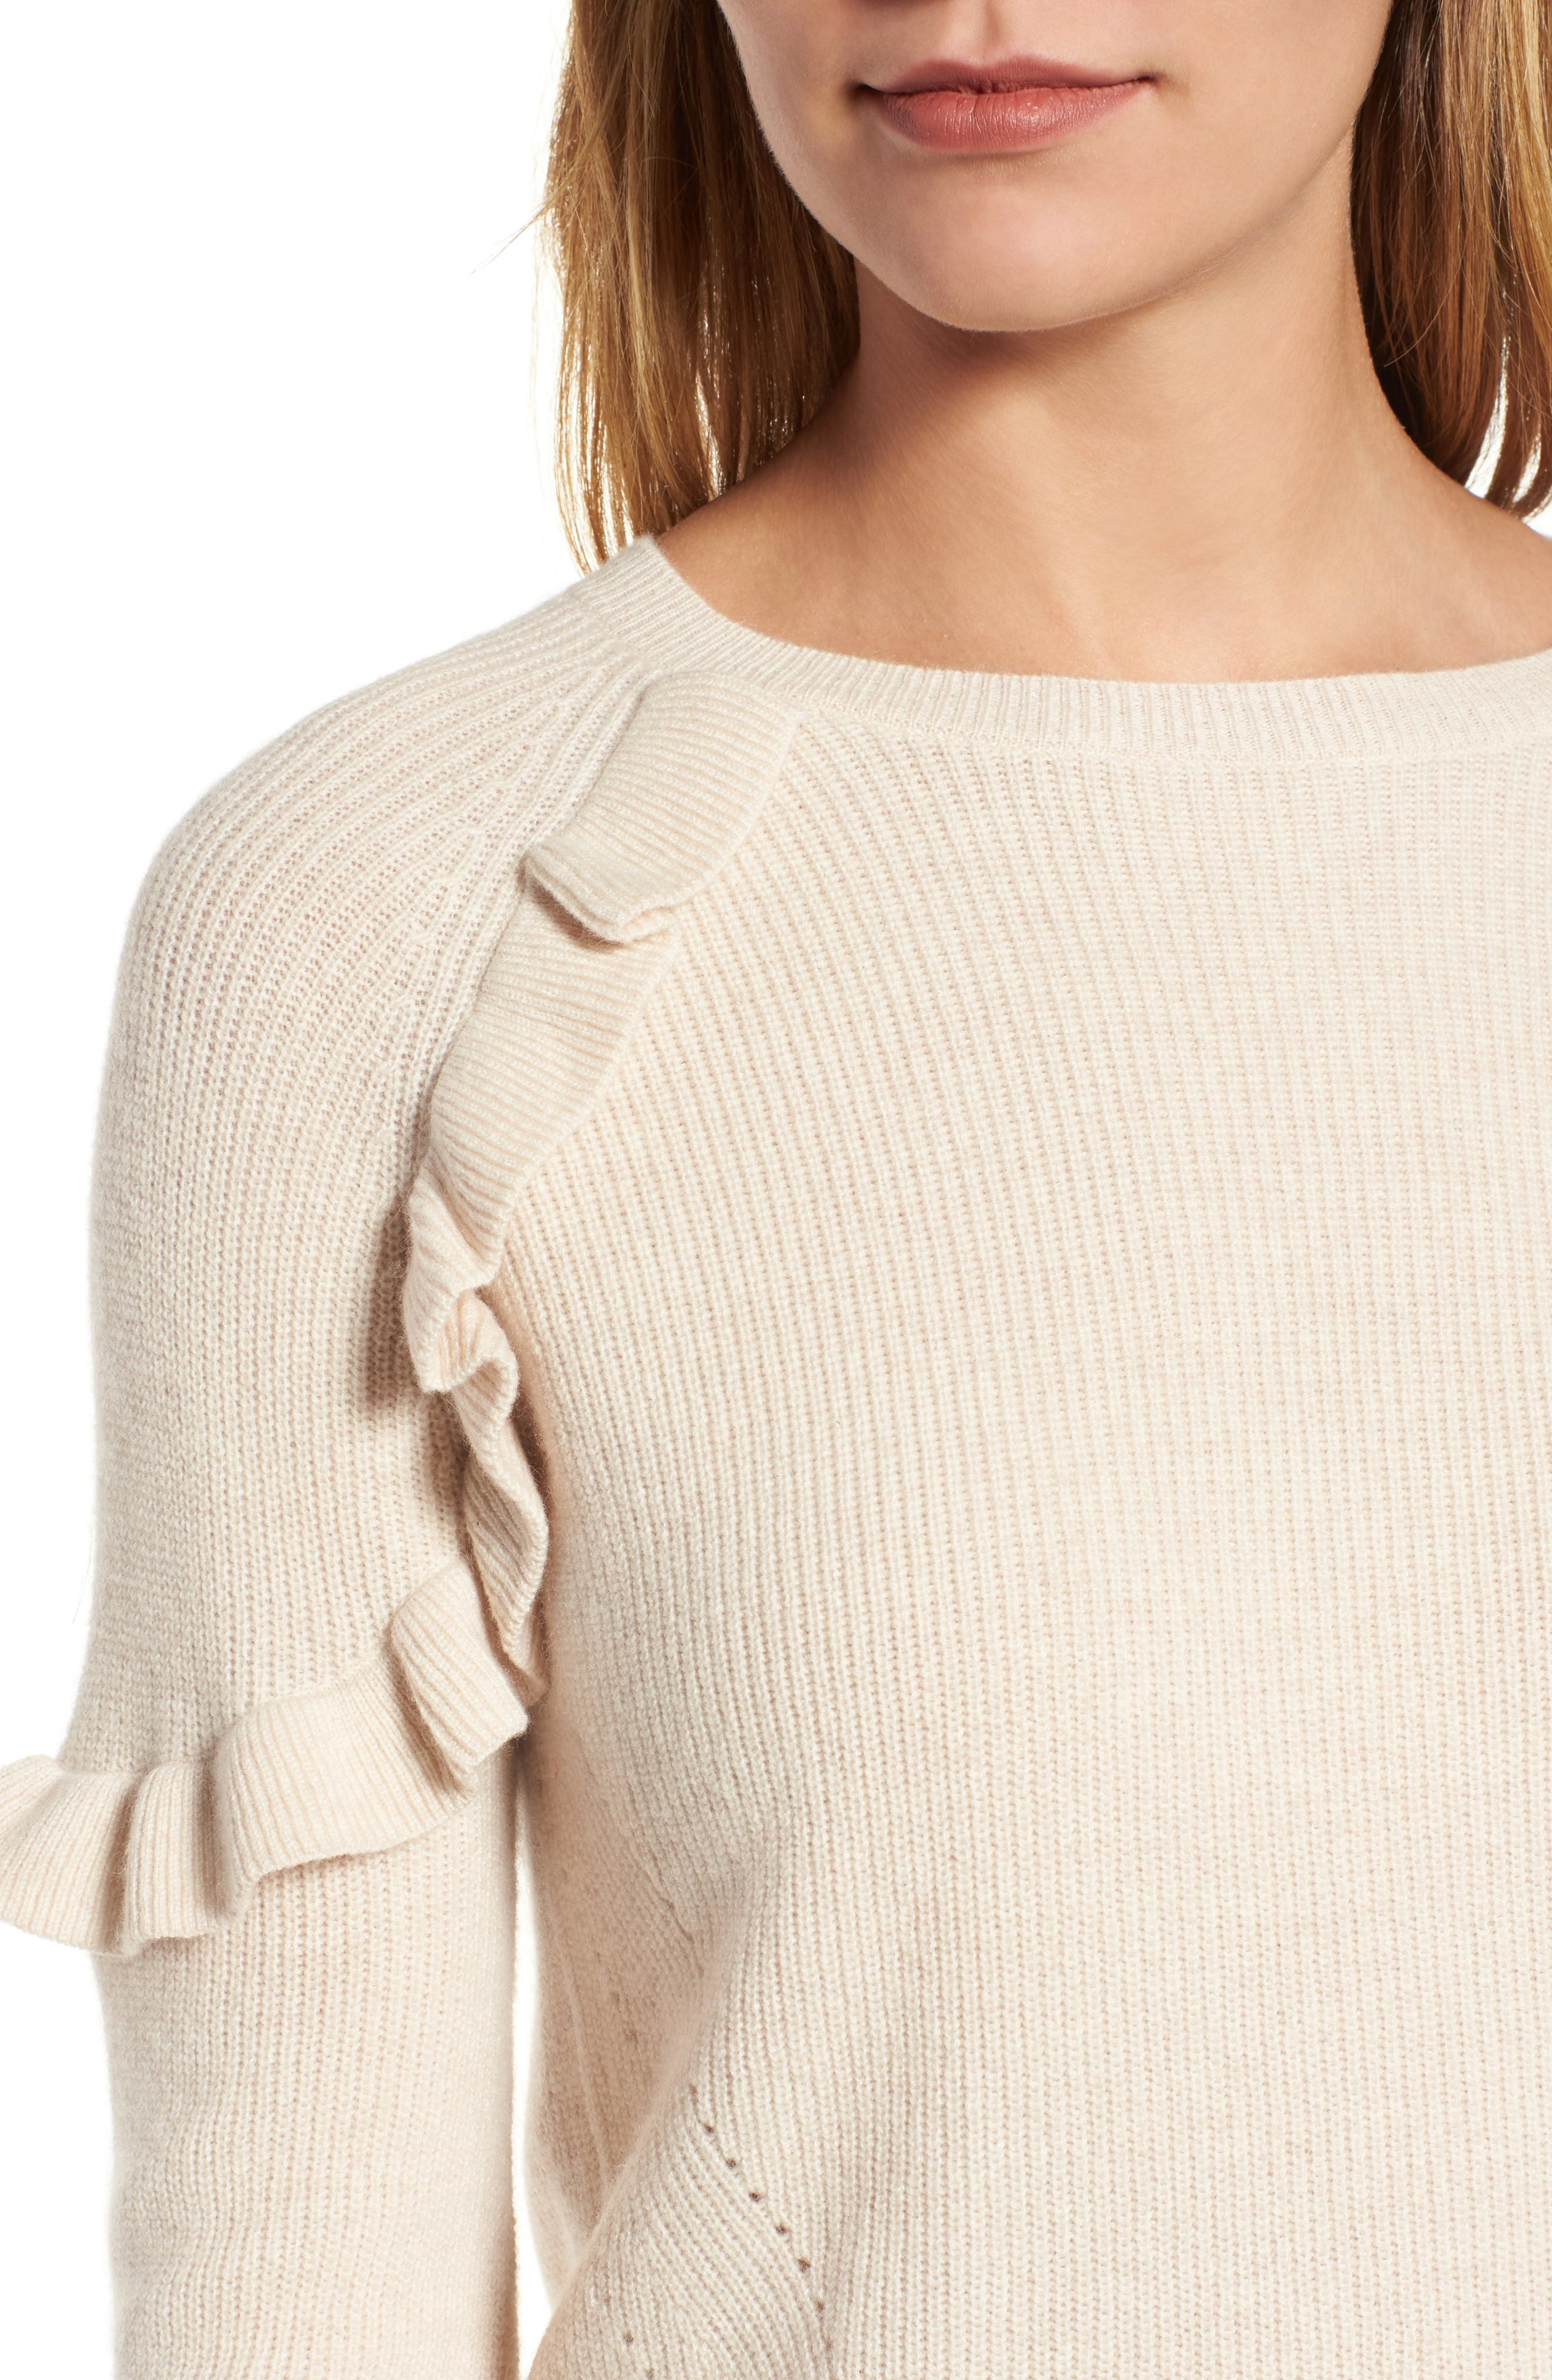 Cashmere Ruffle Shoulder Sweater,                             Alternate thumbnail 4, color,                             Bisque